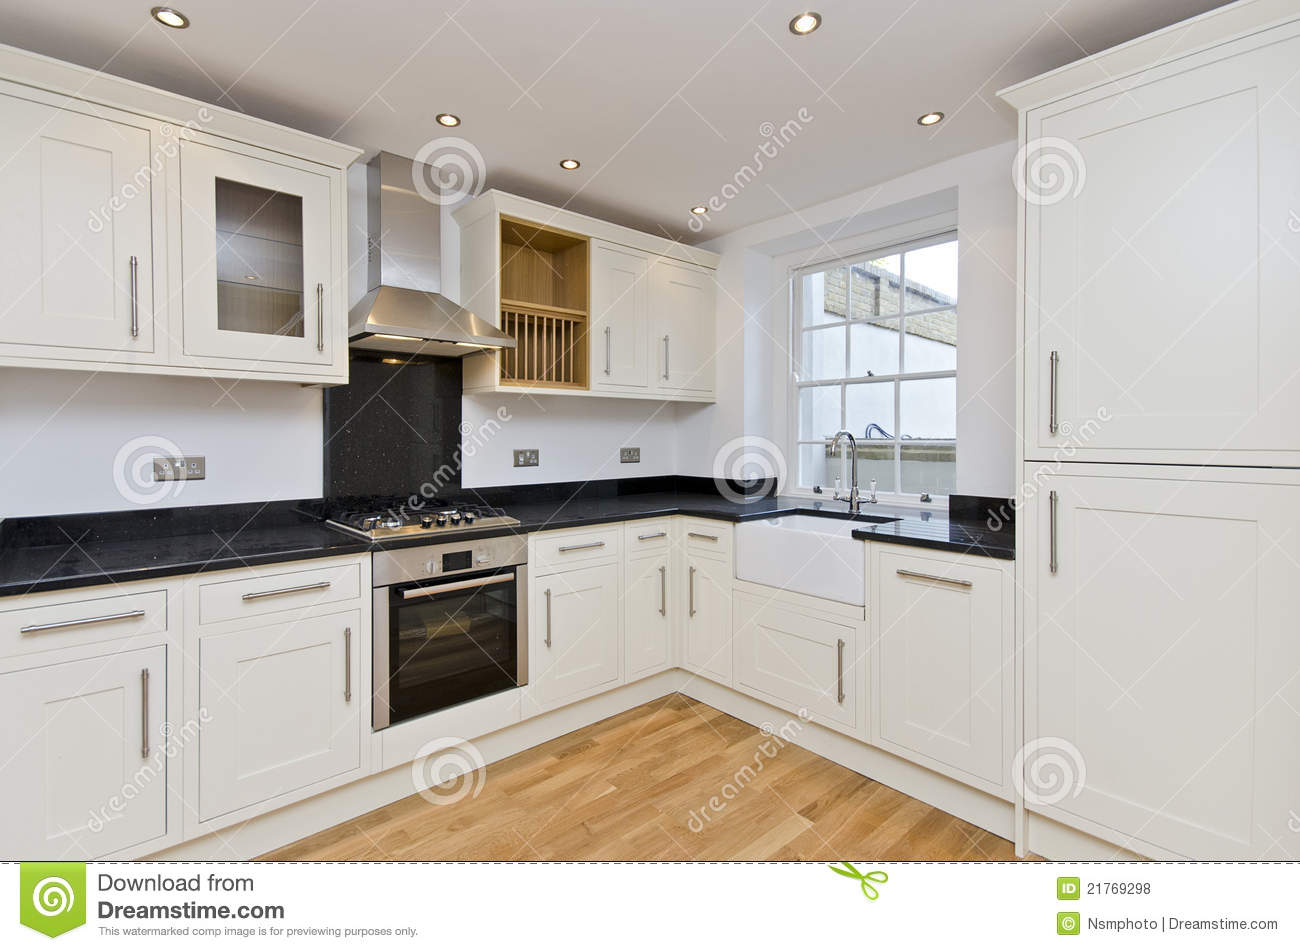 L Kitchen Modern Kitchen L Shape Kitchen In White Royalty Free Stock Photos